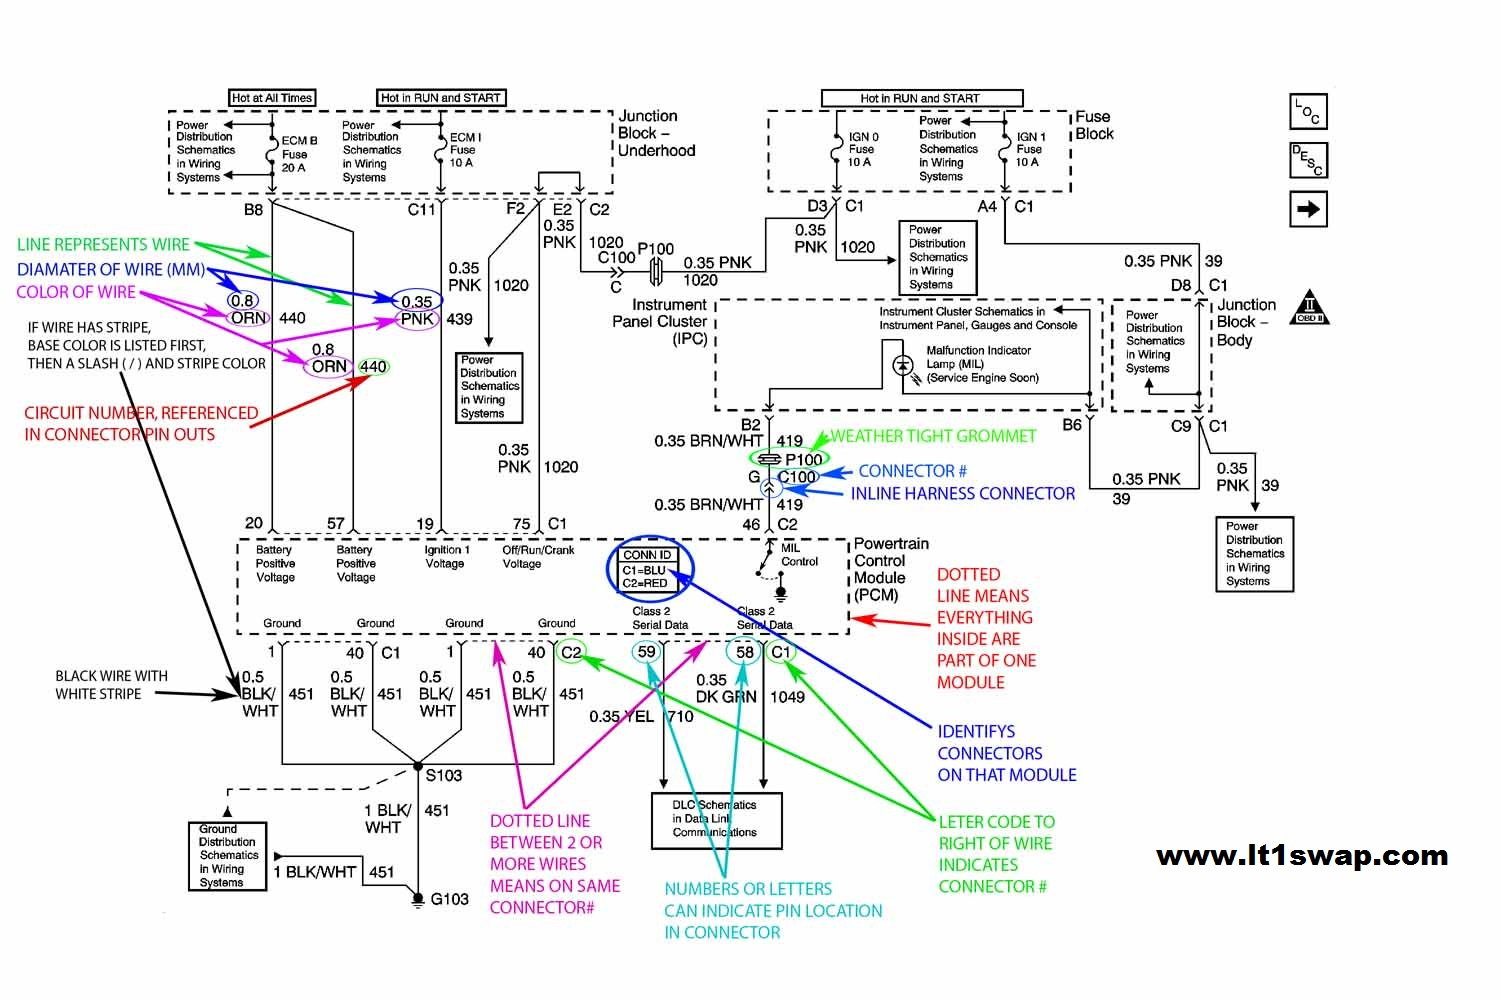 2000 nissan frontier alternator wiring diagram trailer brake light pontiac firebird fuse box - ls1tech